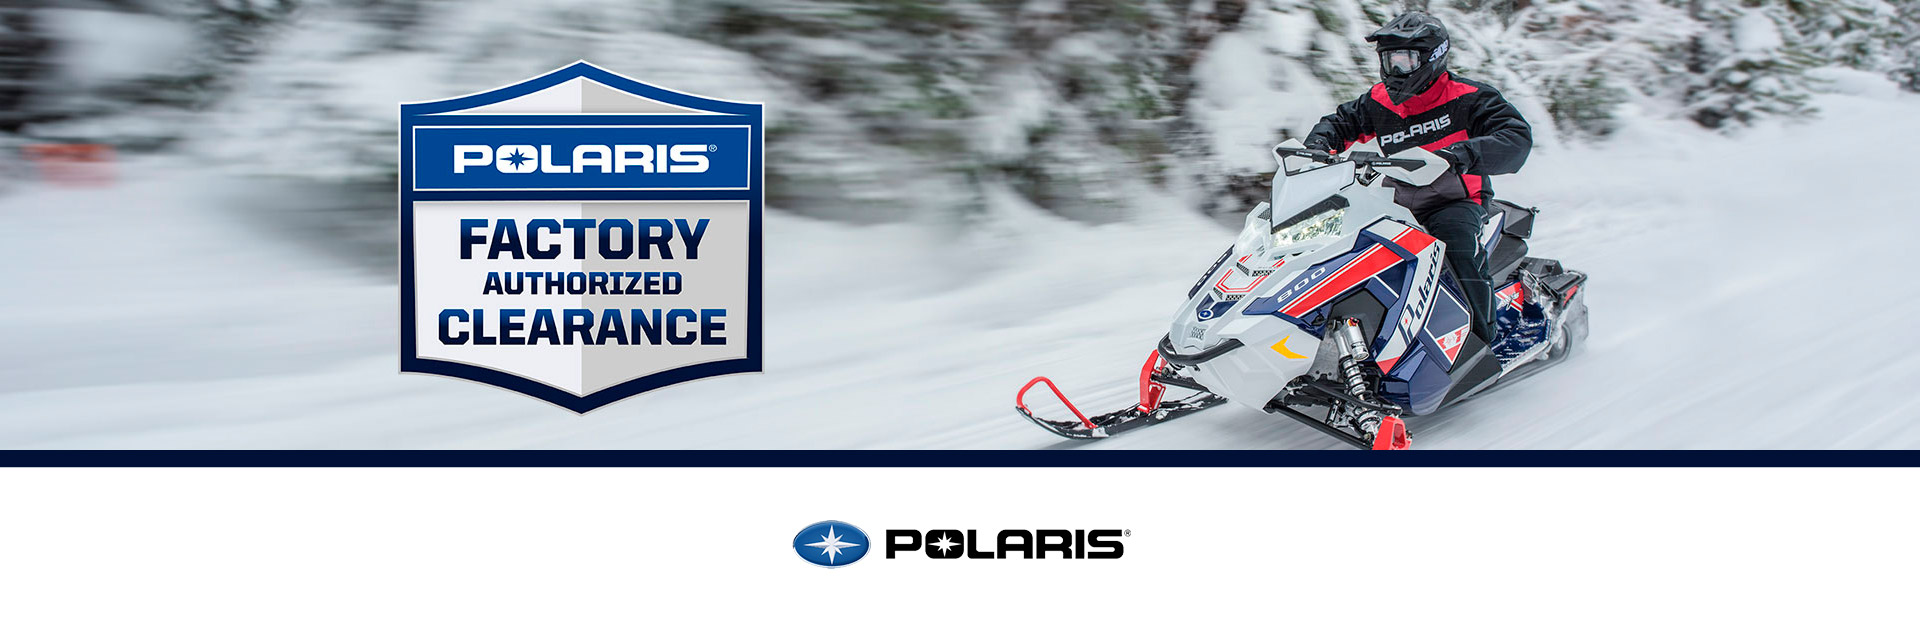 Polaris Industries: Factory Authorized Clearance - Snow